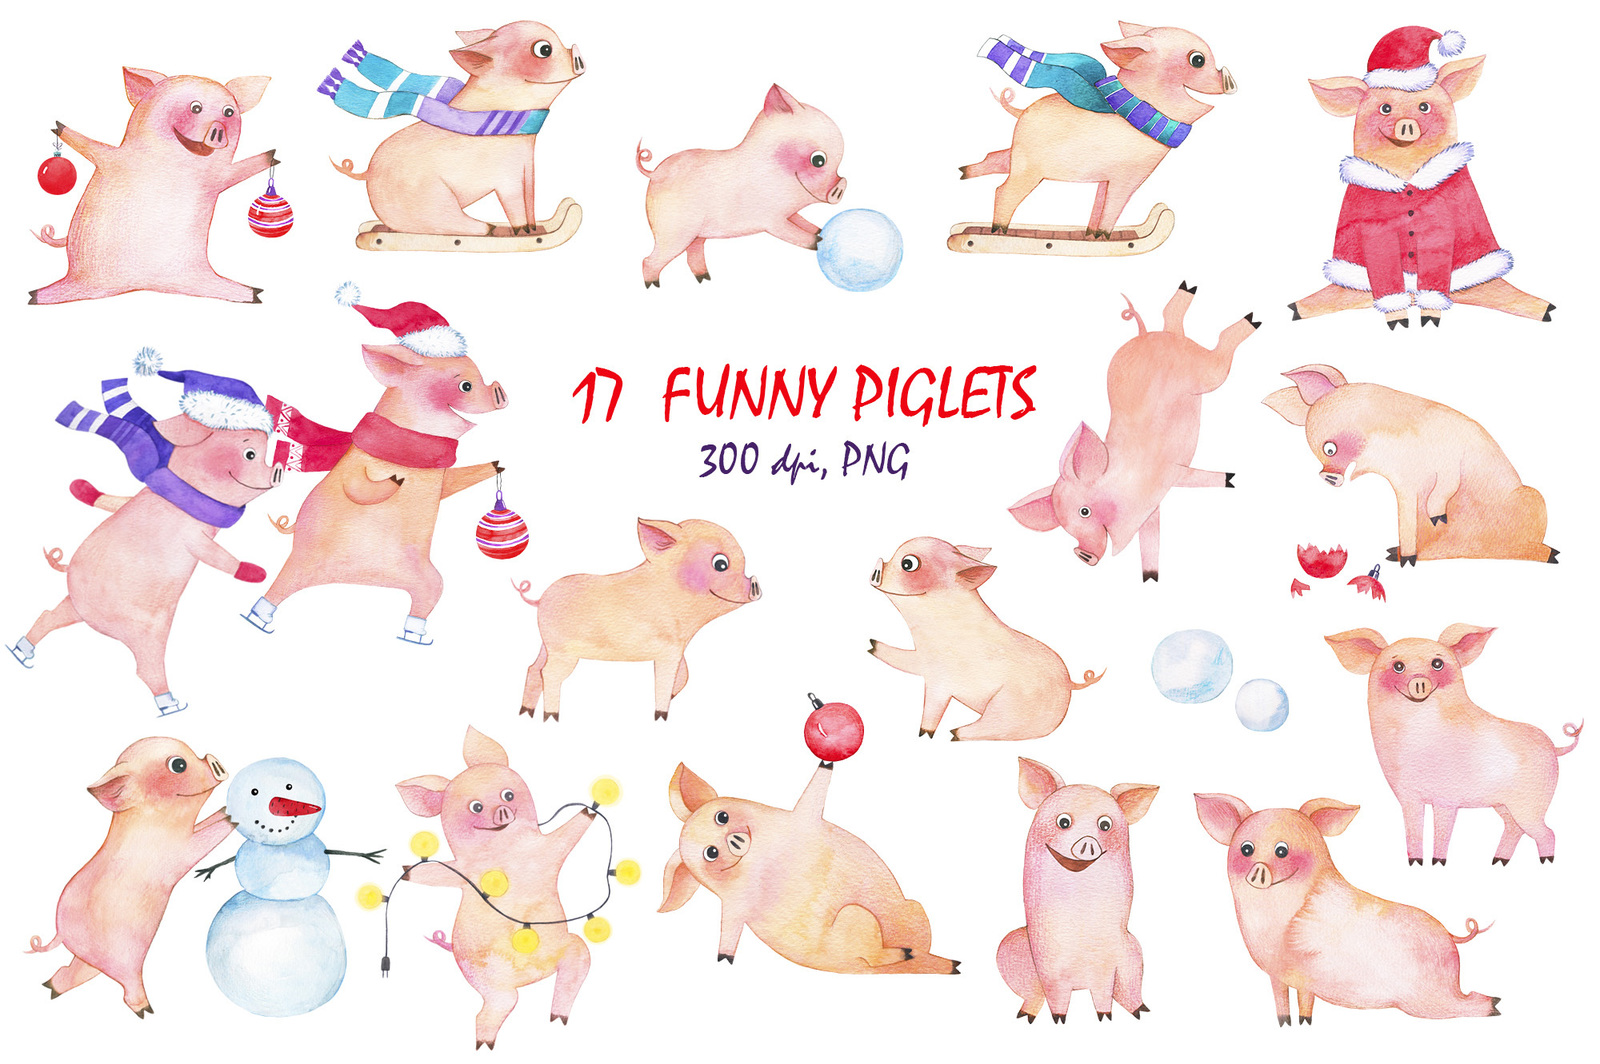 Holiday with funny piglets!